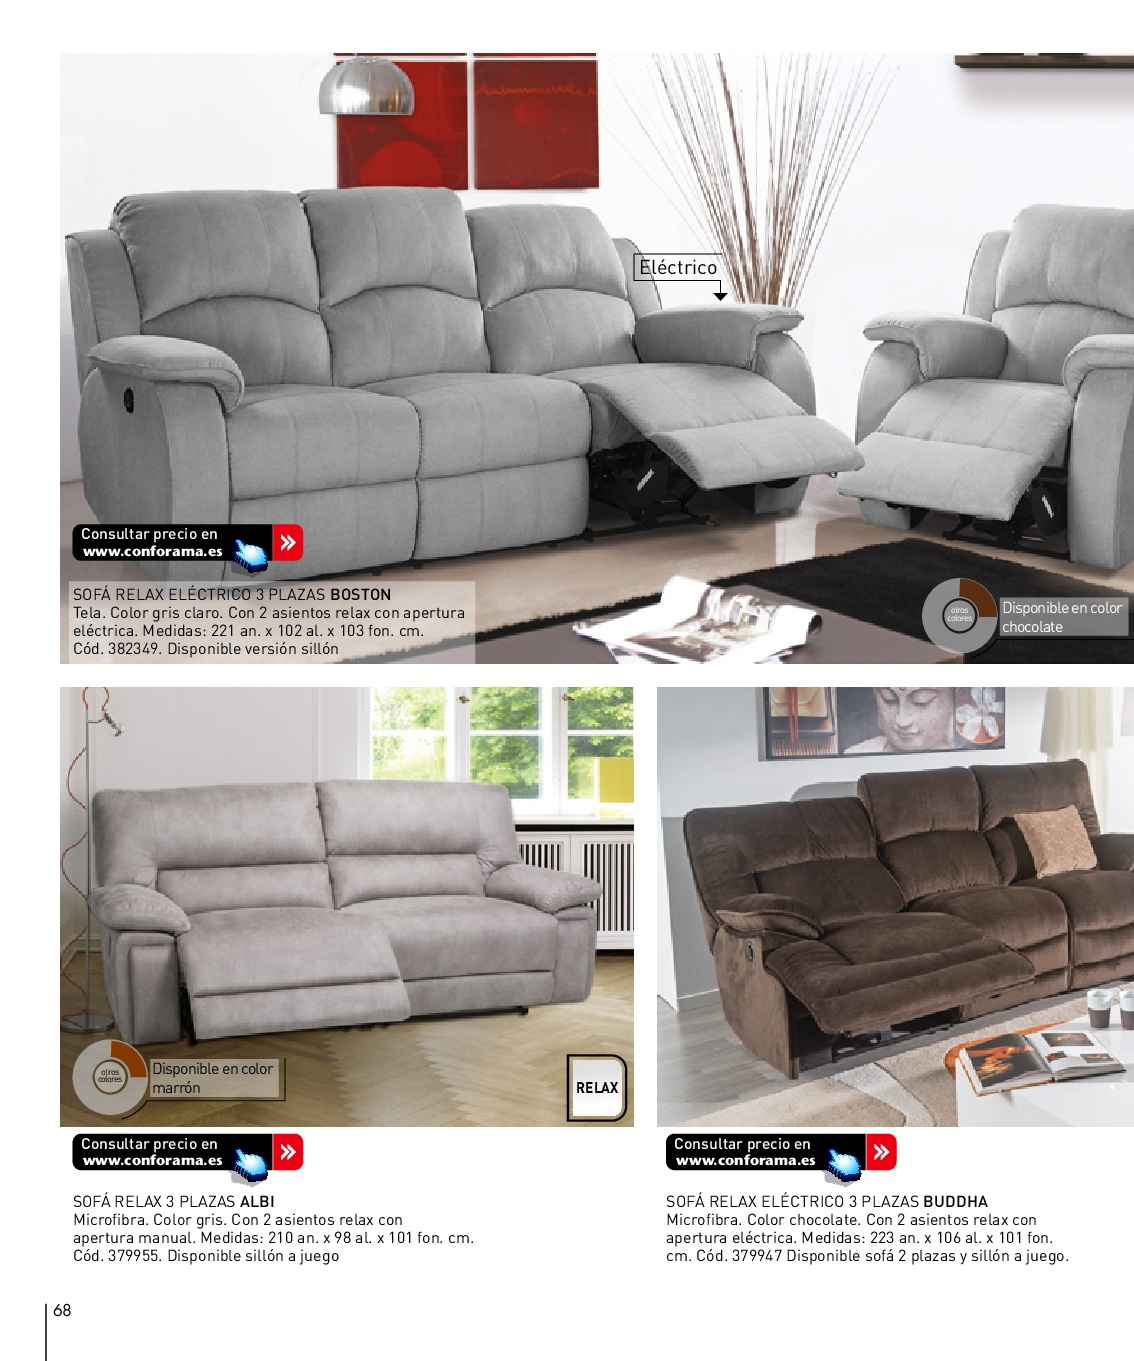 Sofa 2 plazas conforama sof relax plazas valdo with sofa for Divano kelly conforama